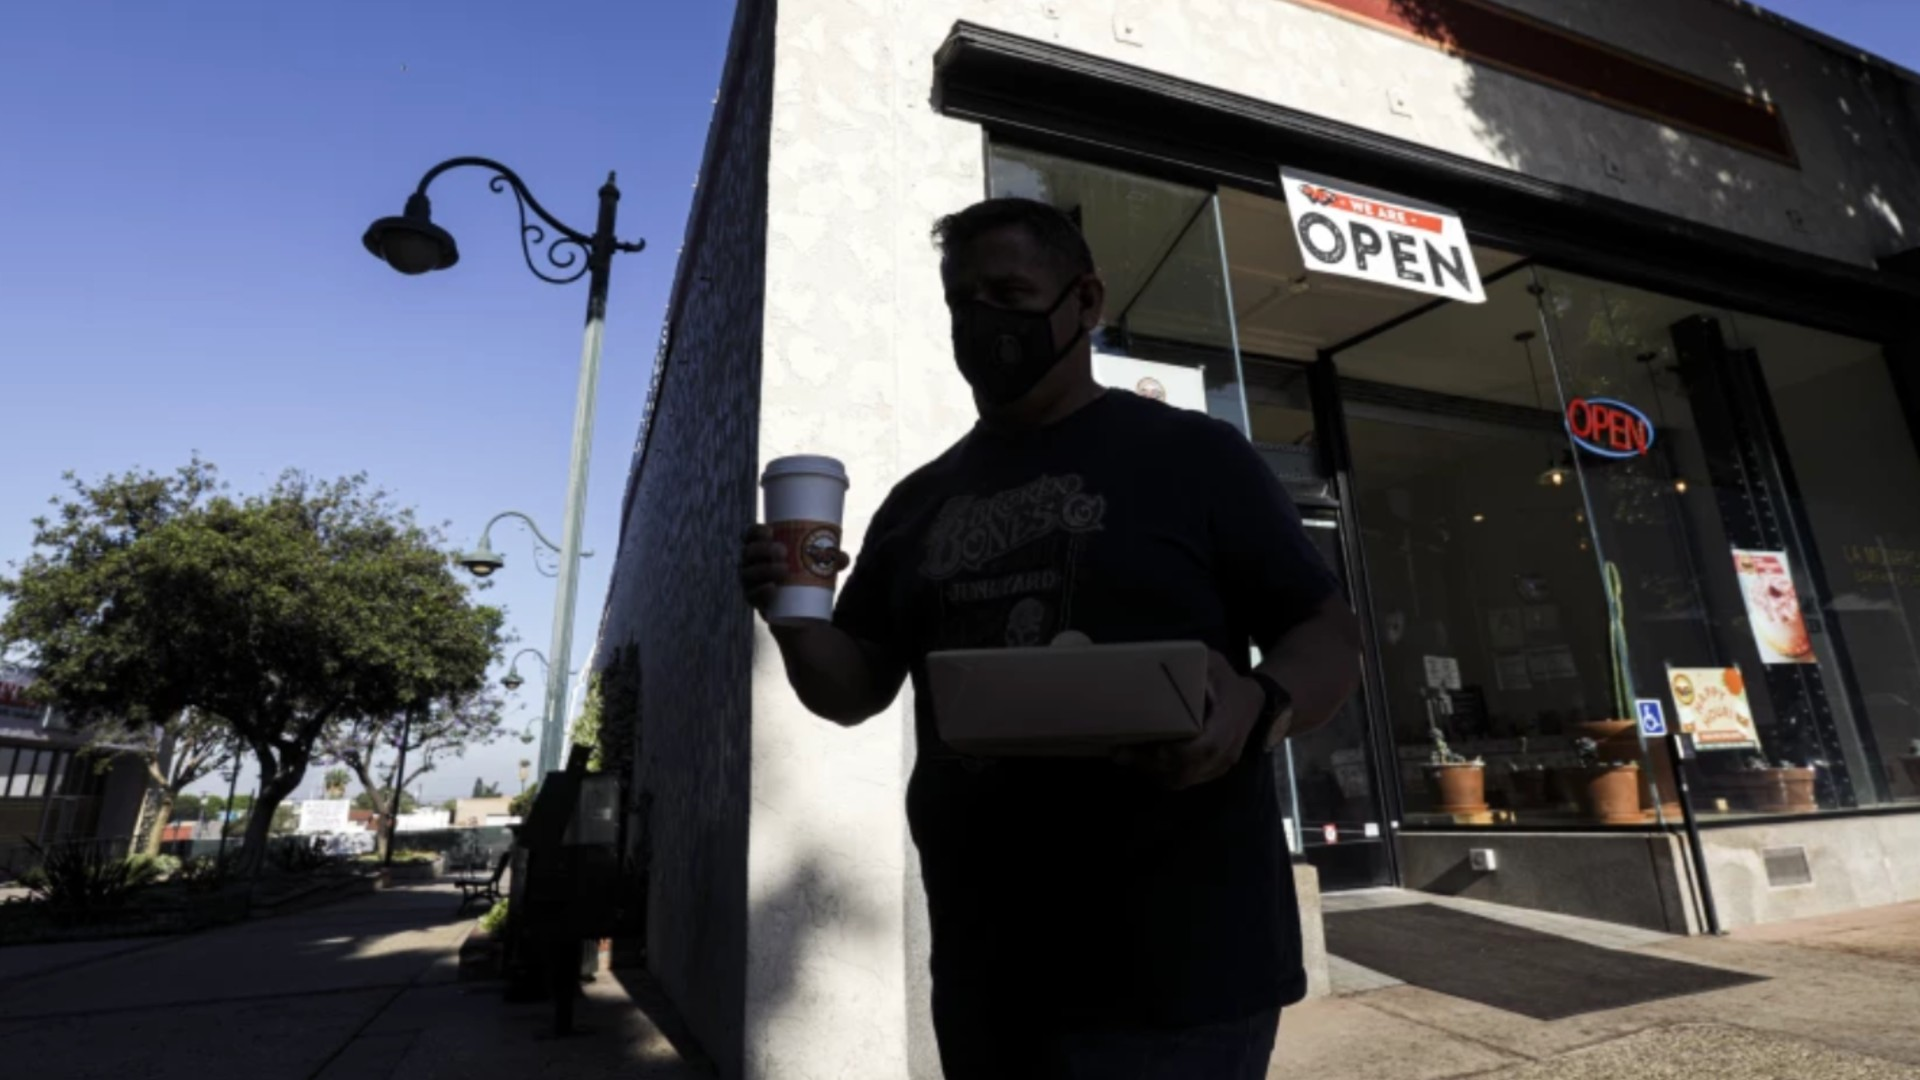 Businesses are headed for full reopening on June 15, when California drops pandemic restrictions. Economists say a consumer-spending boom will drive economic recovery. Above, David Fernandez carries his breakfast from La Monarca Bakery in Whittier last year.(Irfan Khan / Los Angeles Times)